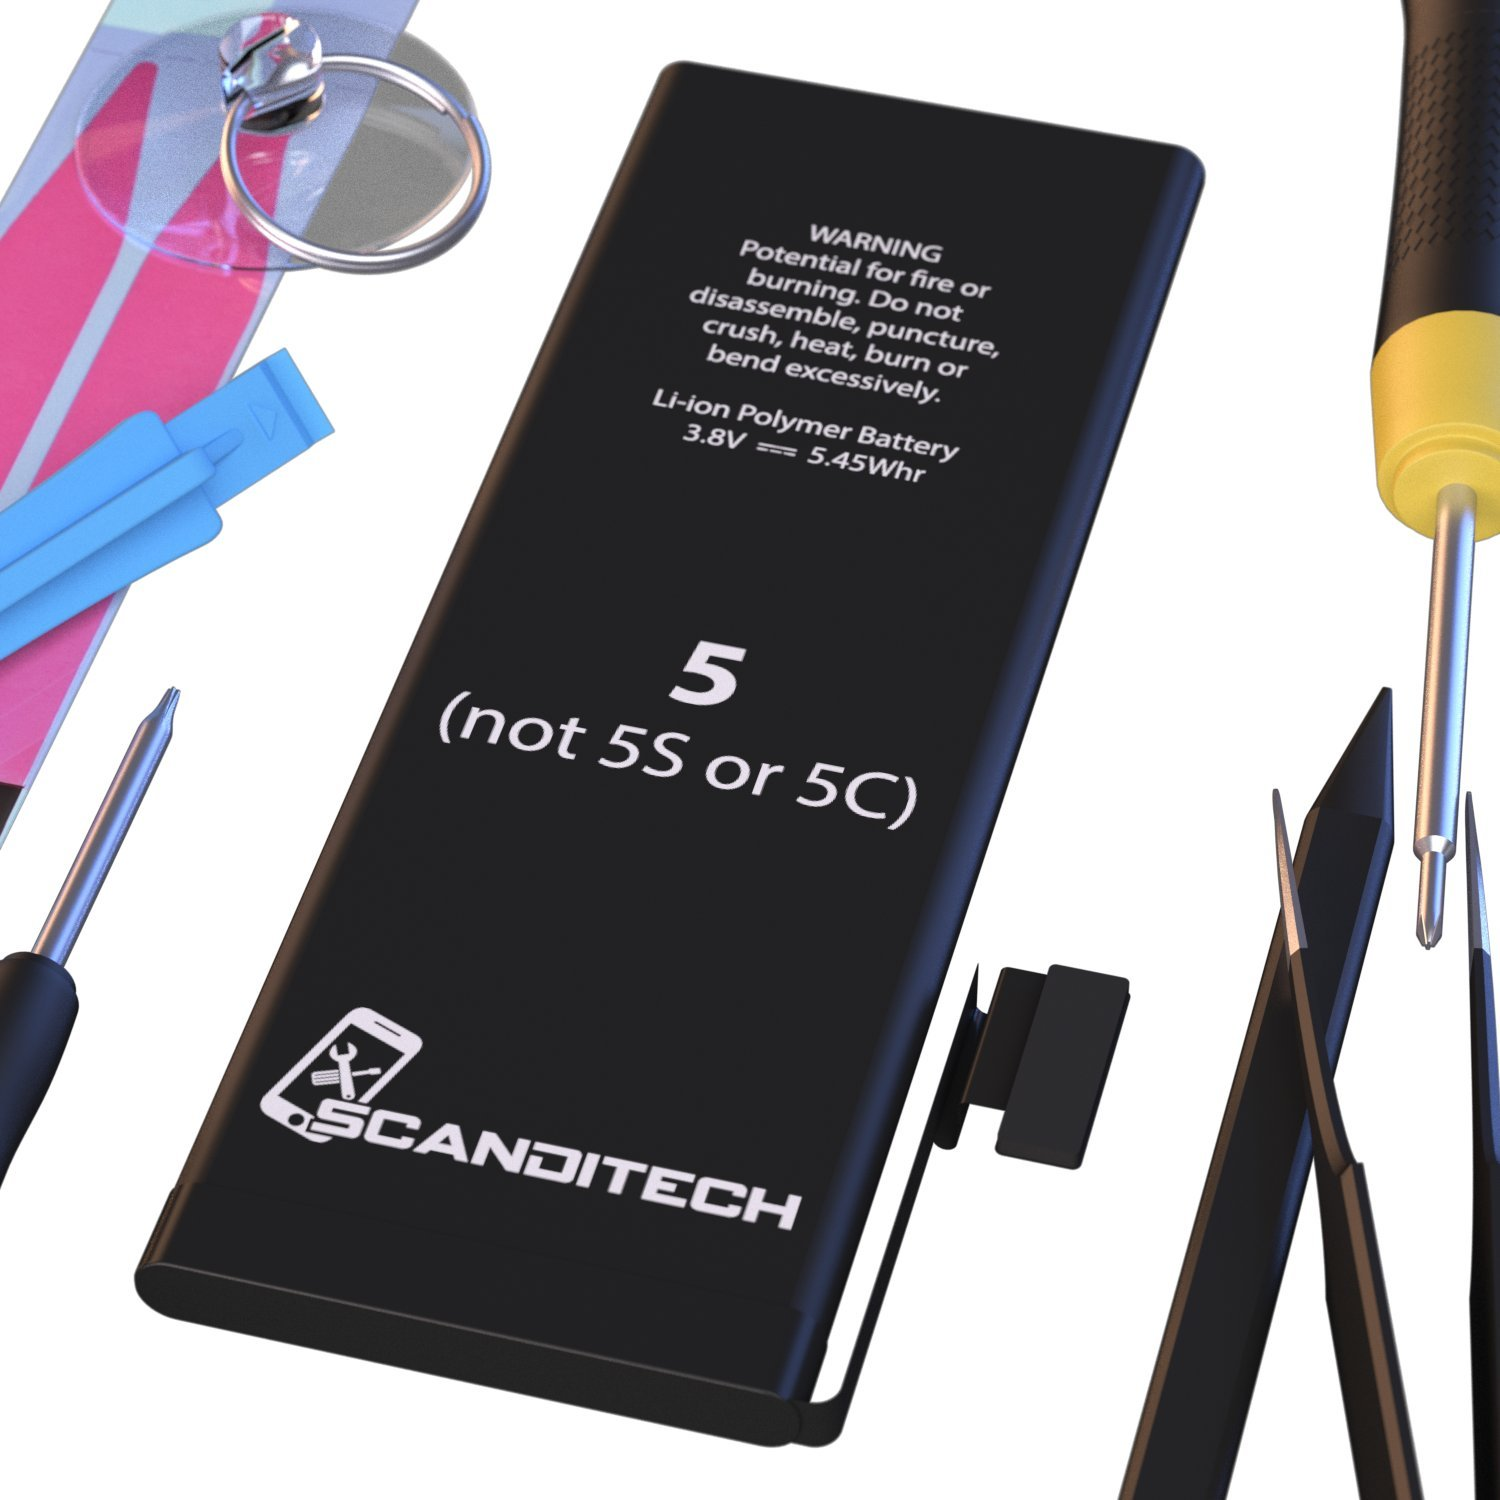 ScandiTech Battery Model iP5 - Replacement Kit with Tools, Adhesive & Instructions - New 1440 mAh 0 Cycle Battery - Repair Your Phone in 15 min - 1 Year Warranty